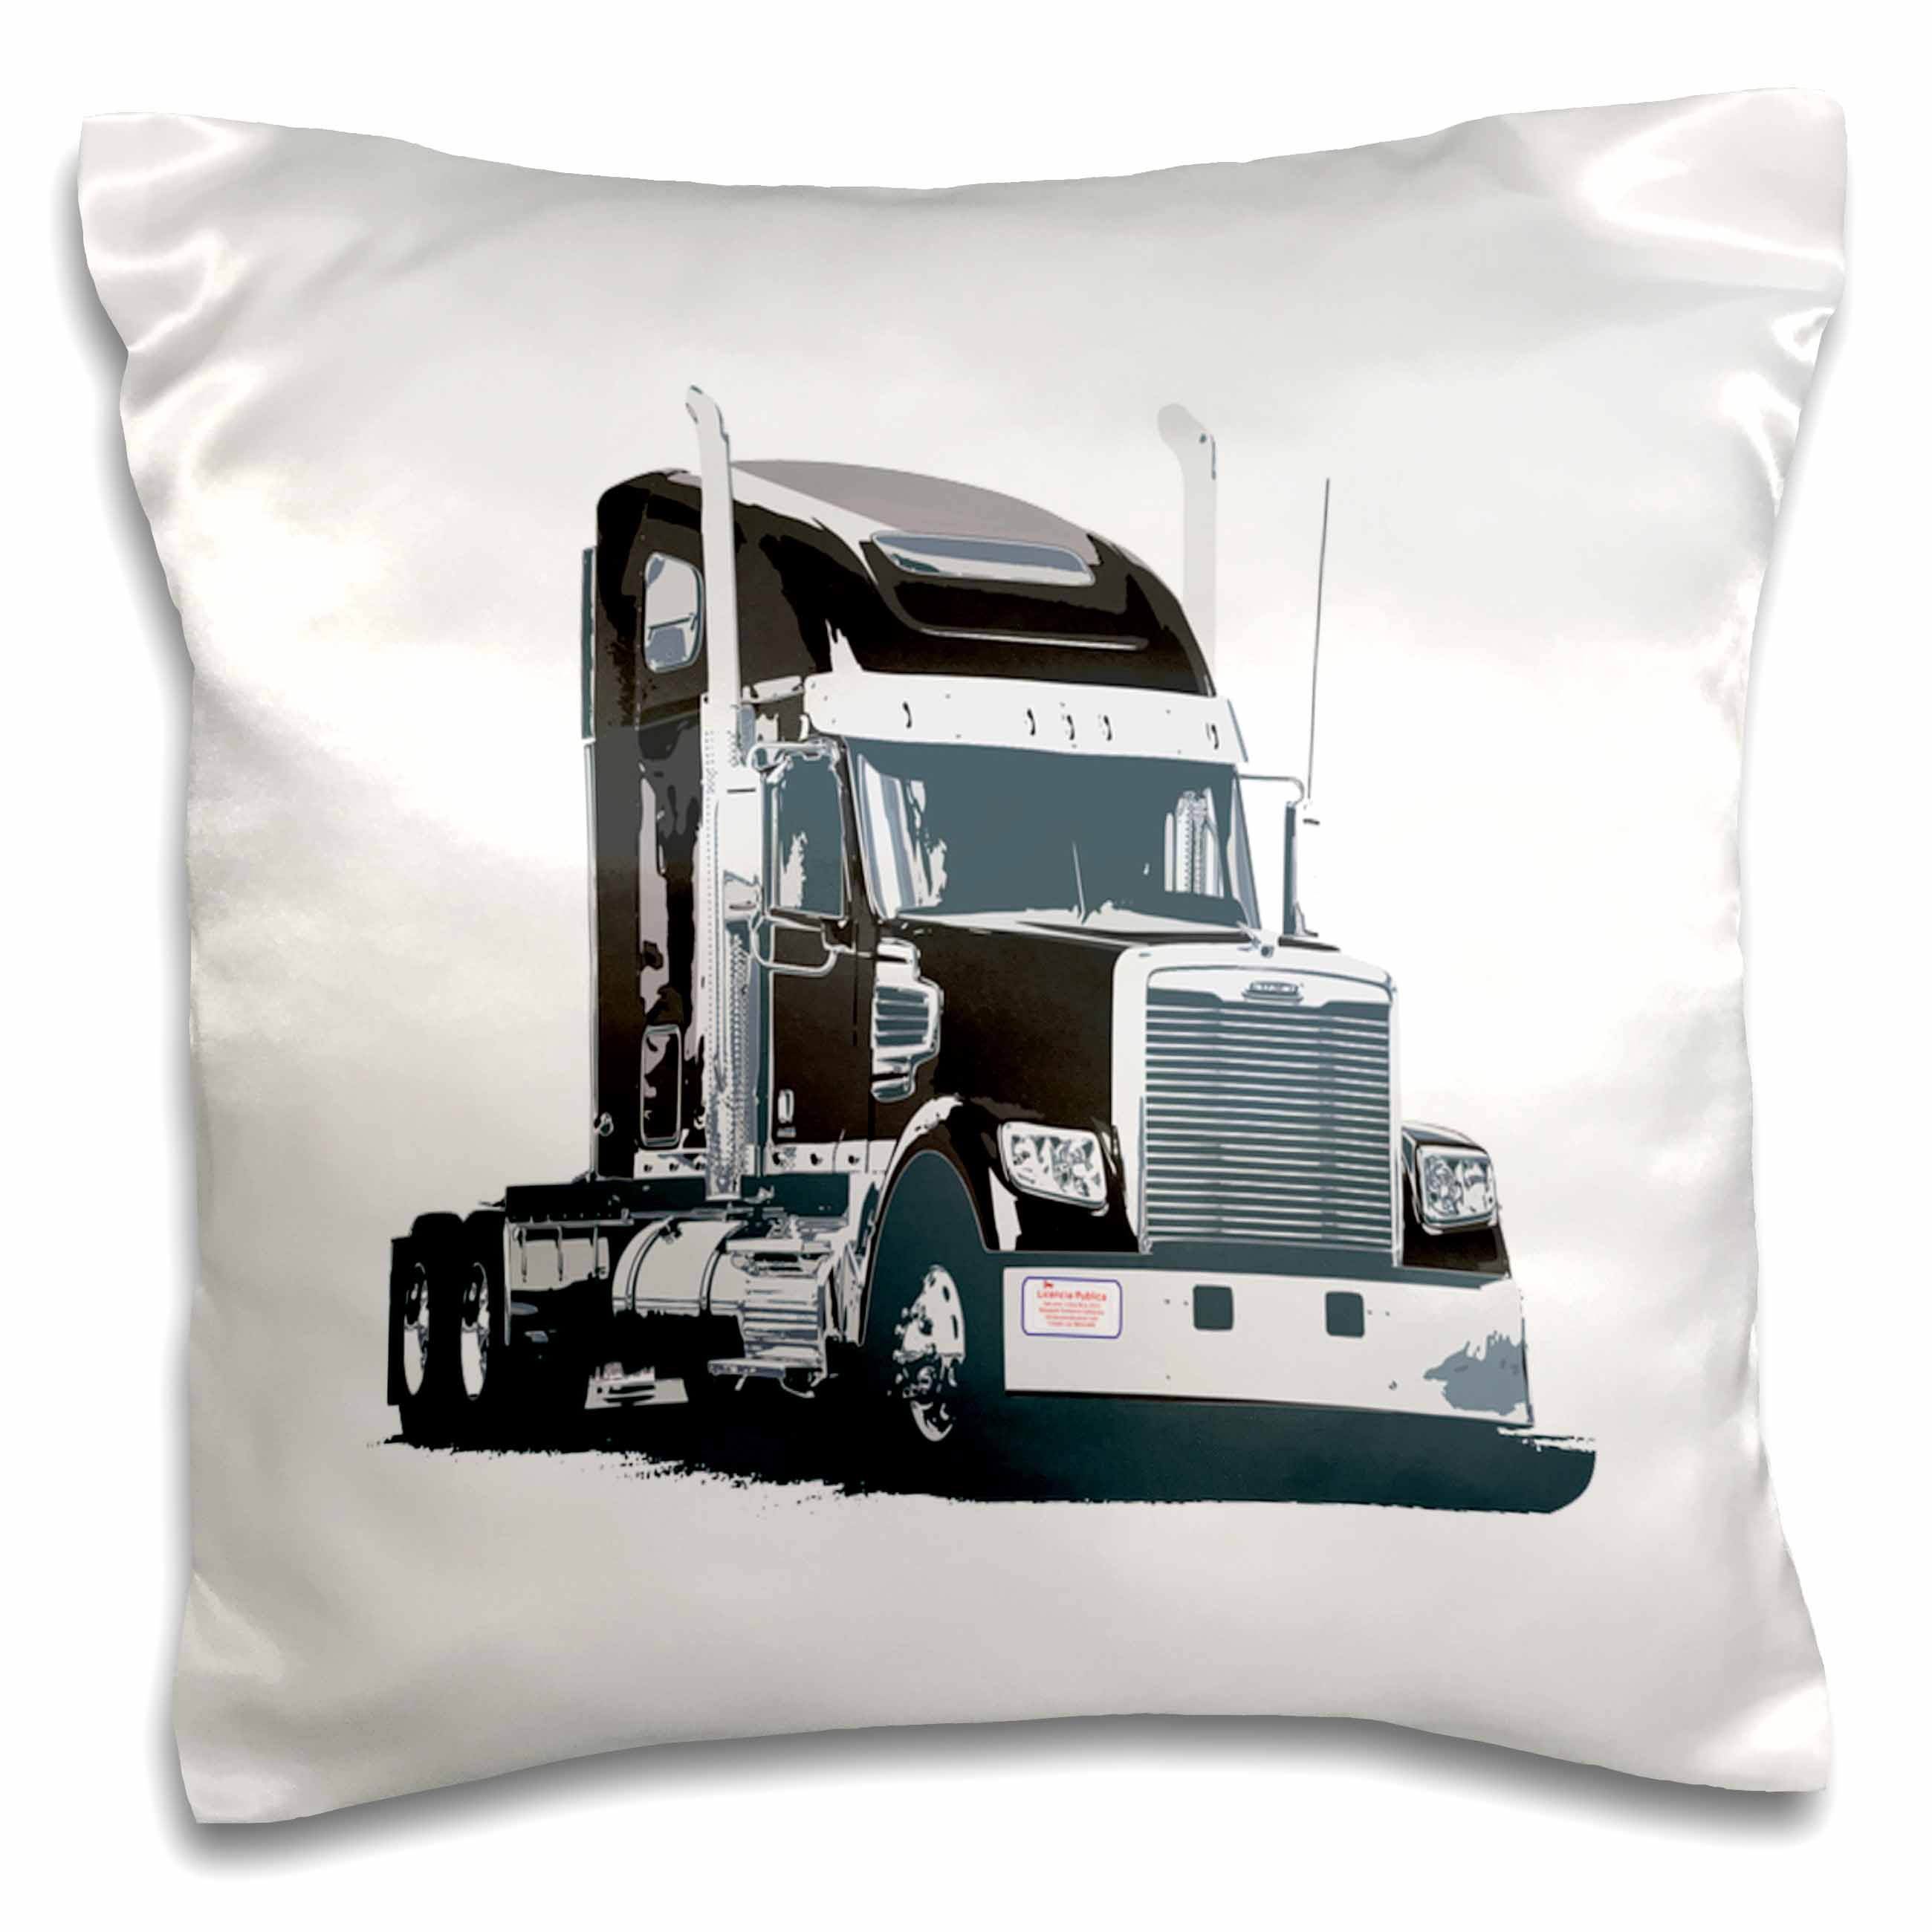 3dRose Print of Semi Rig In Black And Silver, Pillow Case, 16 by 16-inch